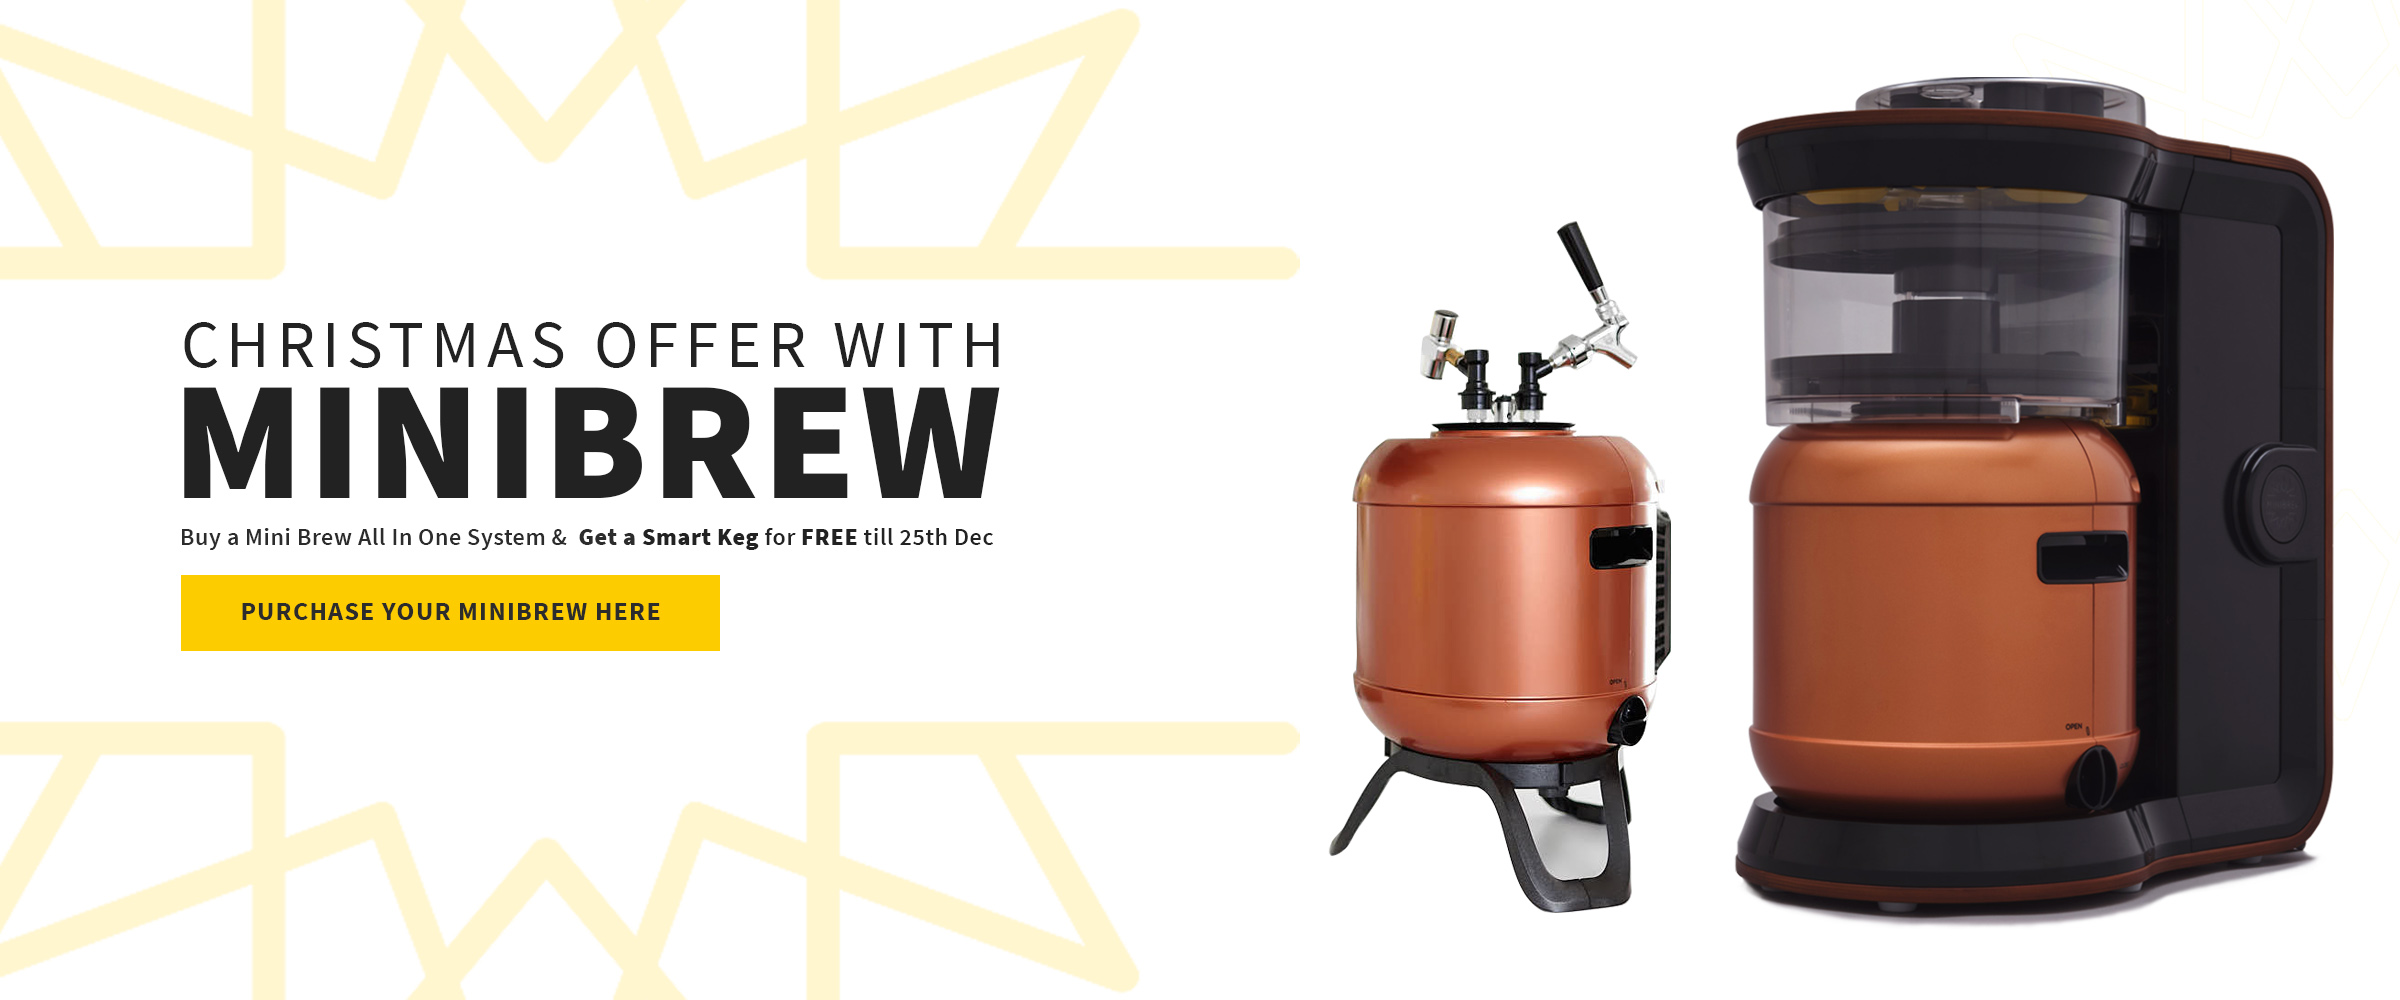 Minibrew Kit with Free Smart Keg